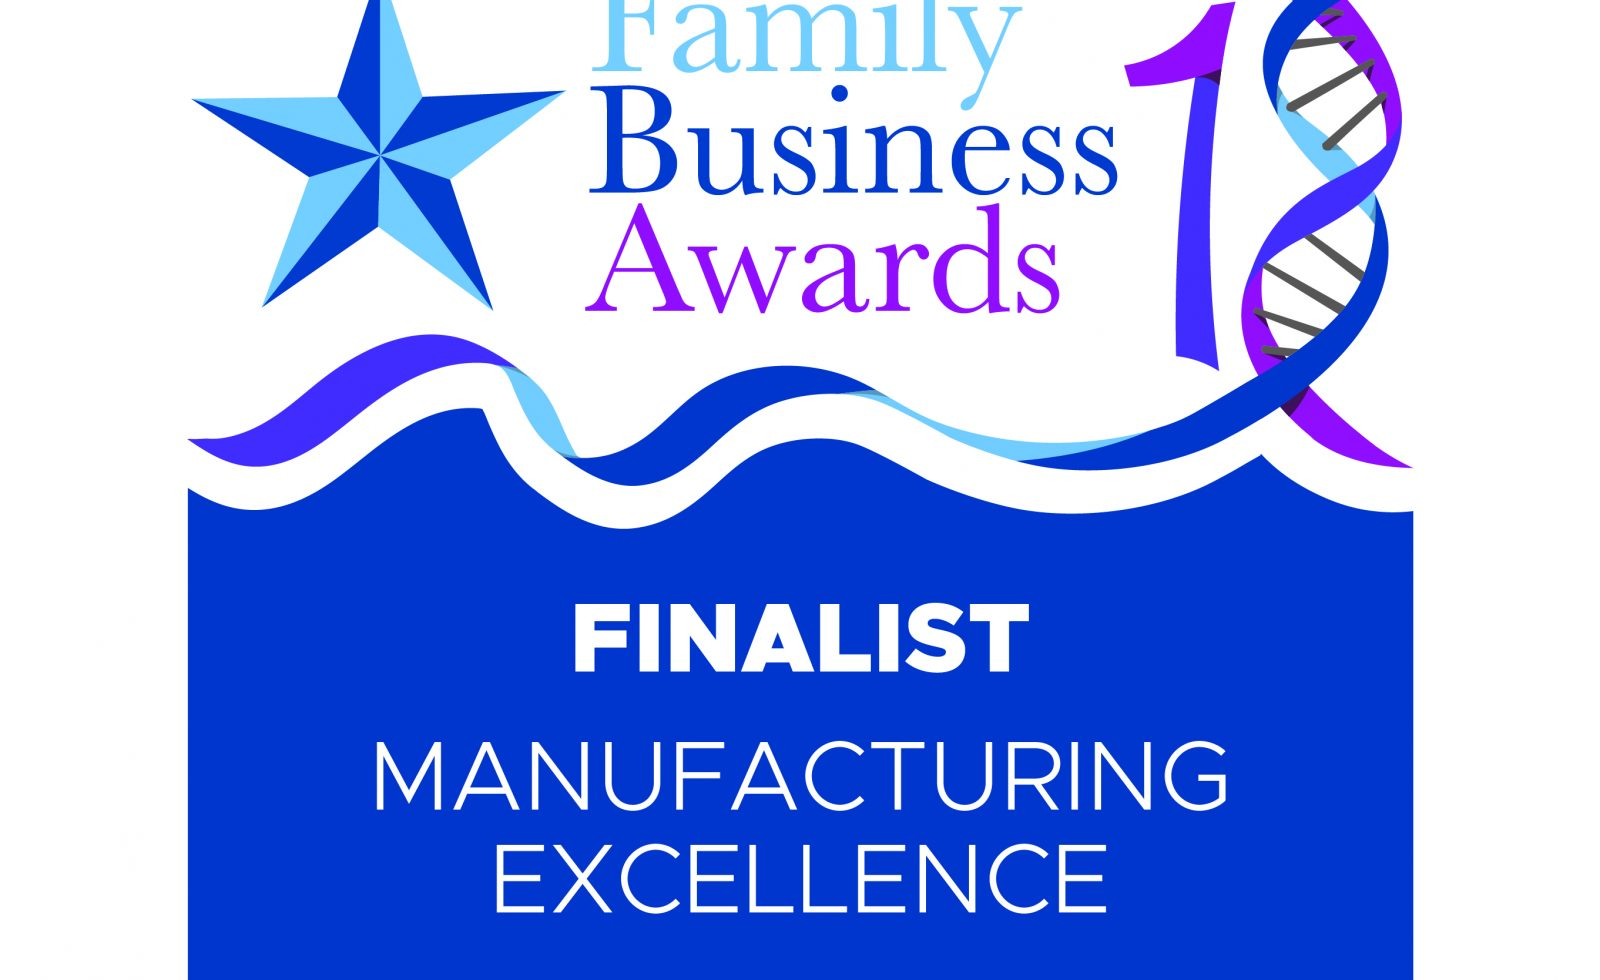 Family Business Awards